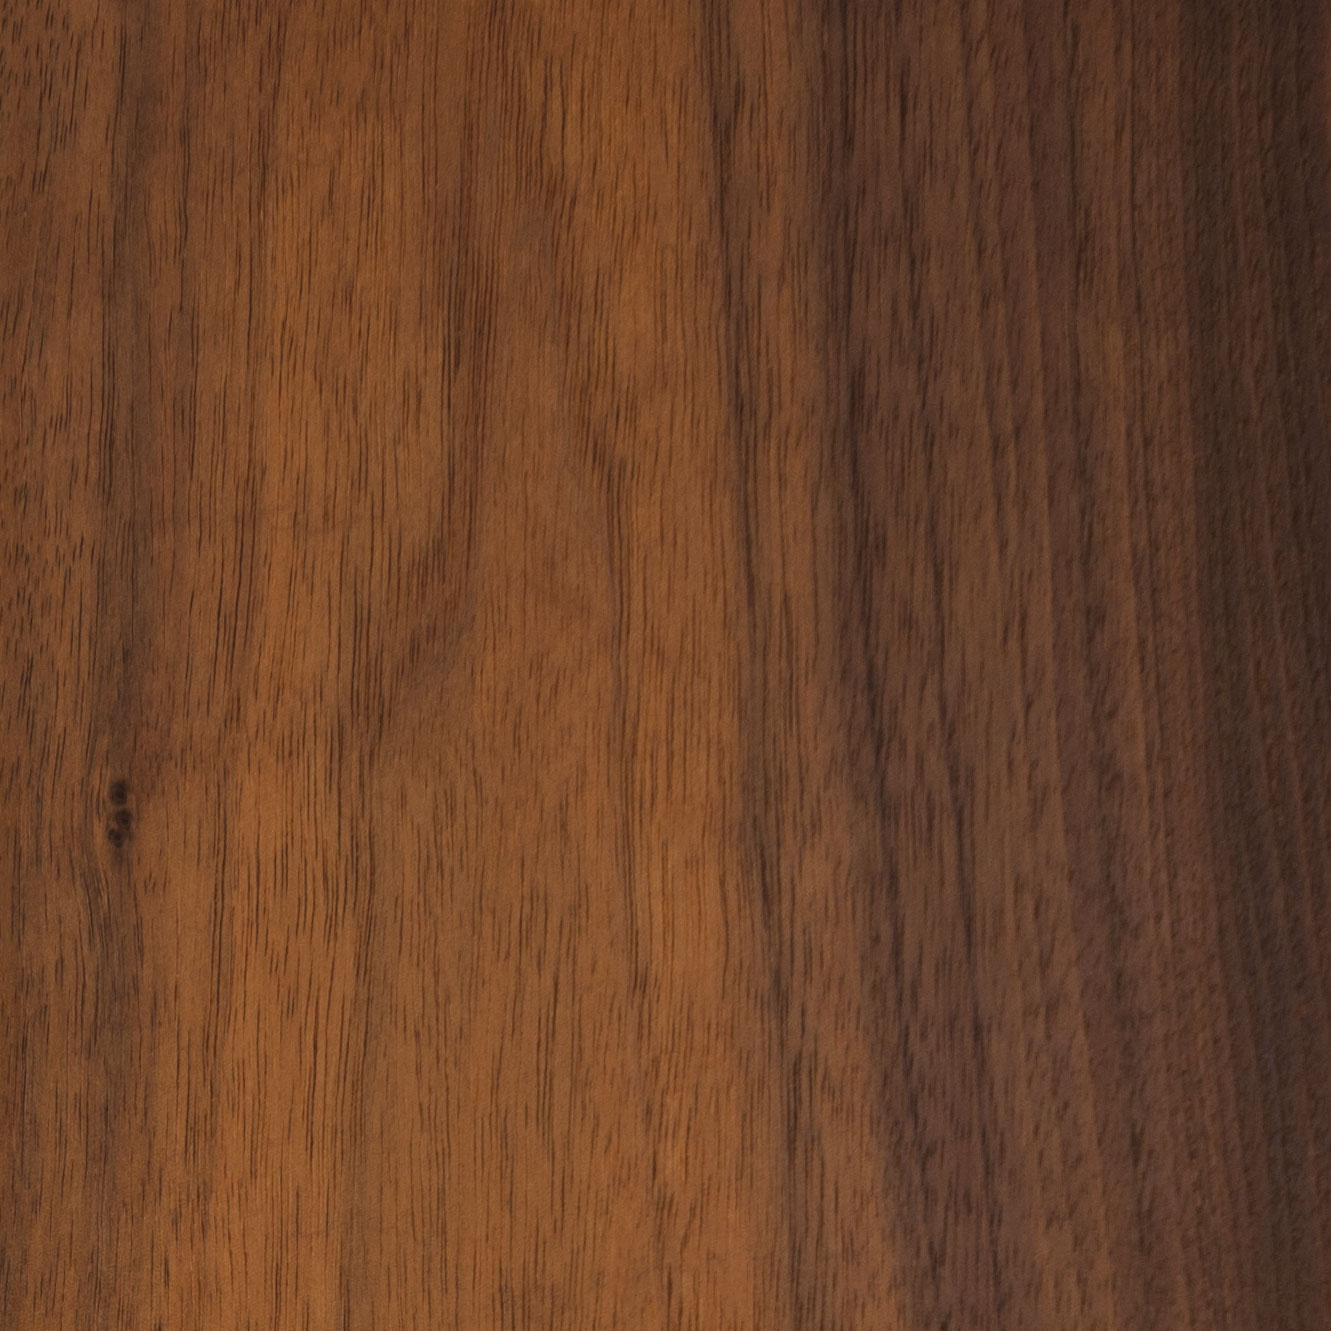 Element7-wide-plank-samples-european-walnut-IMG_9141_CMYK